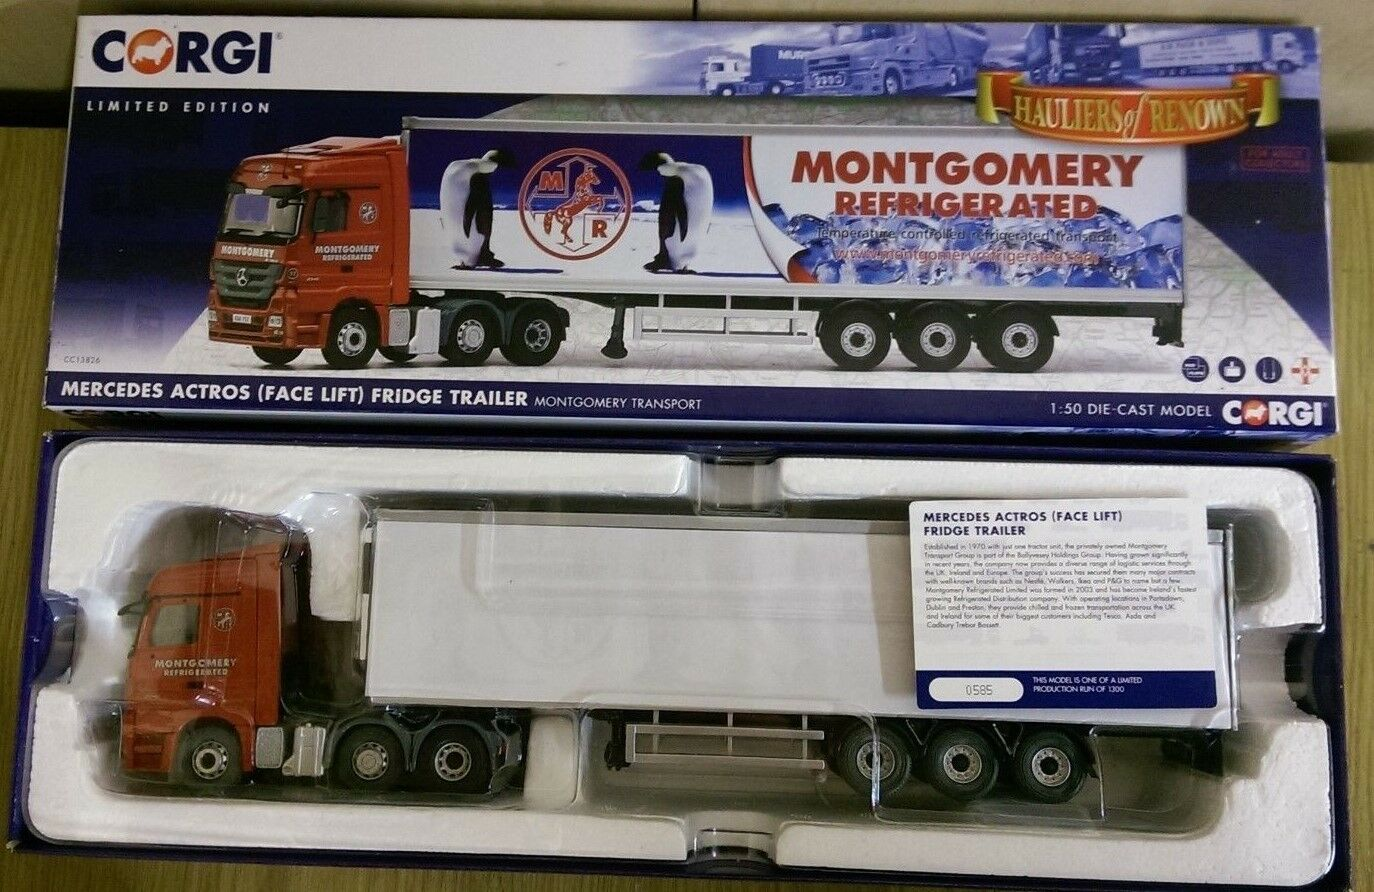 Corgi CC13826 MB Actros Facelift Fridge Trailer Montgomery Ltd Ed. 585 of 1300